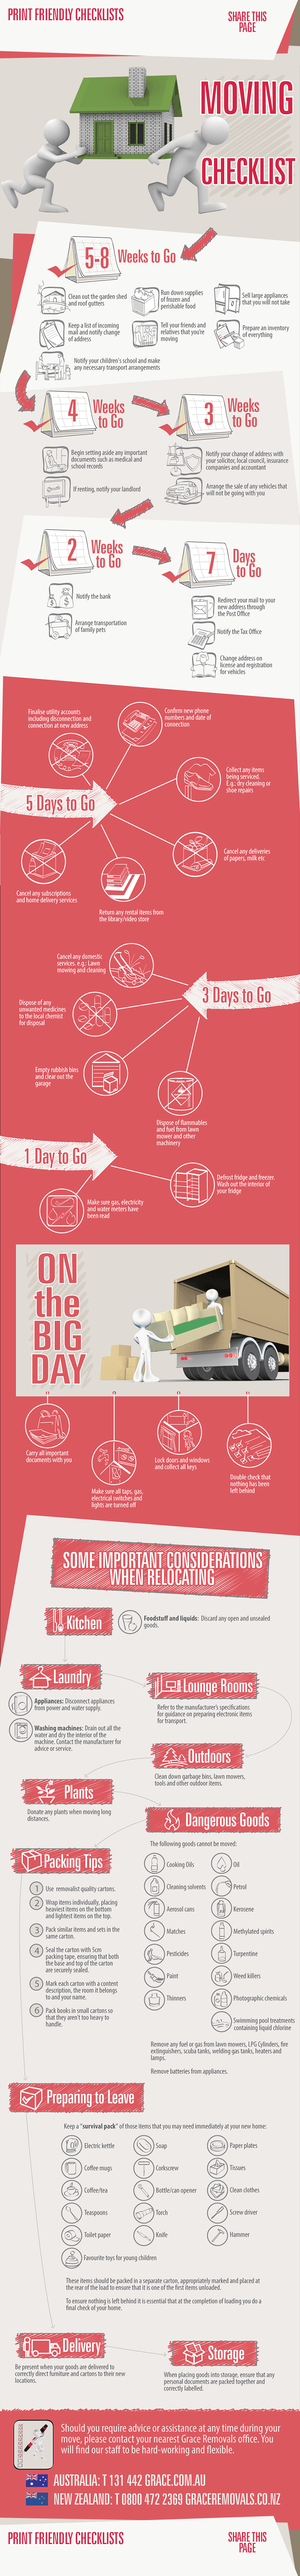 Moving Checklist Infographic  Tips To Help You Moveduring This